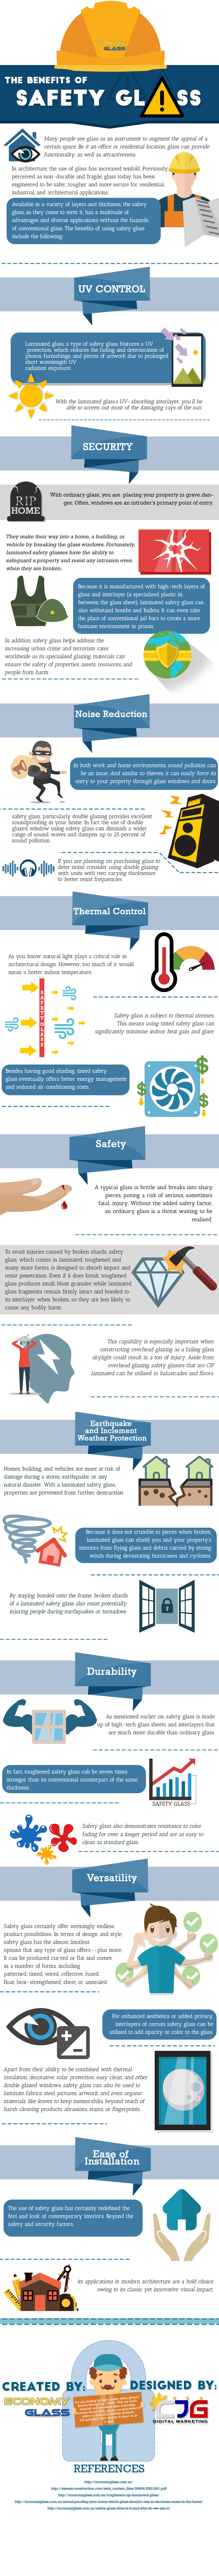 The Benefits of Safety Glass [Infographic]